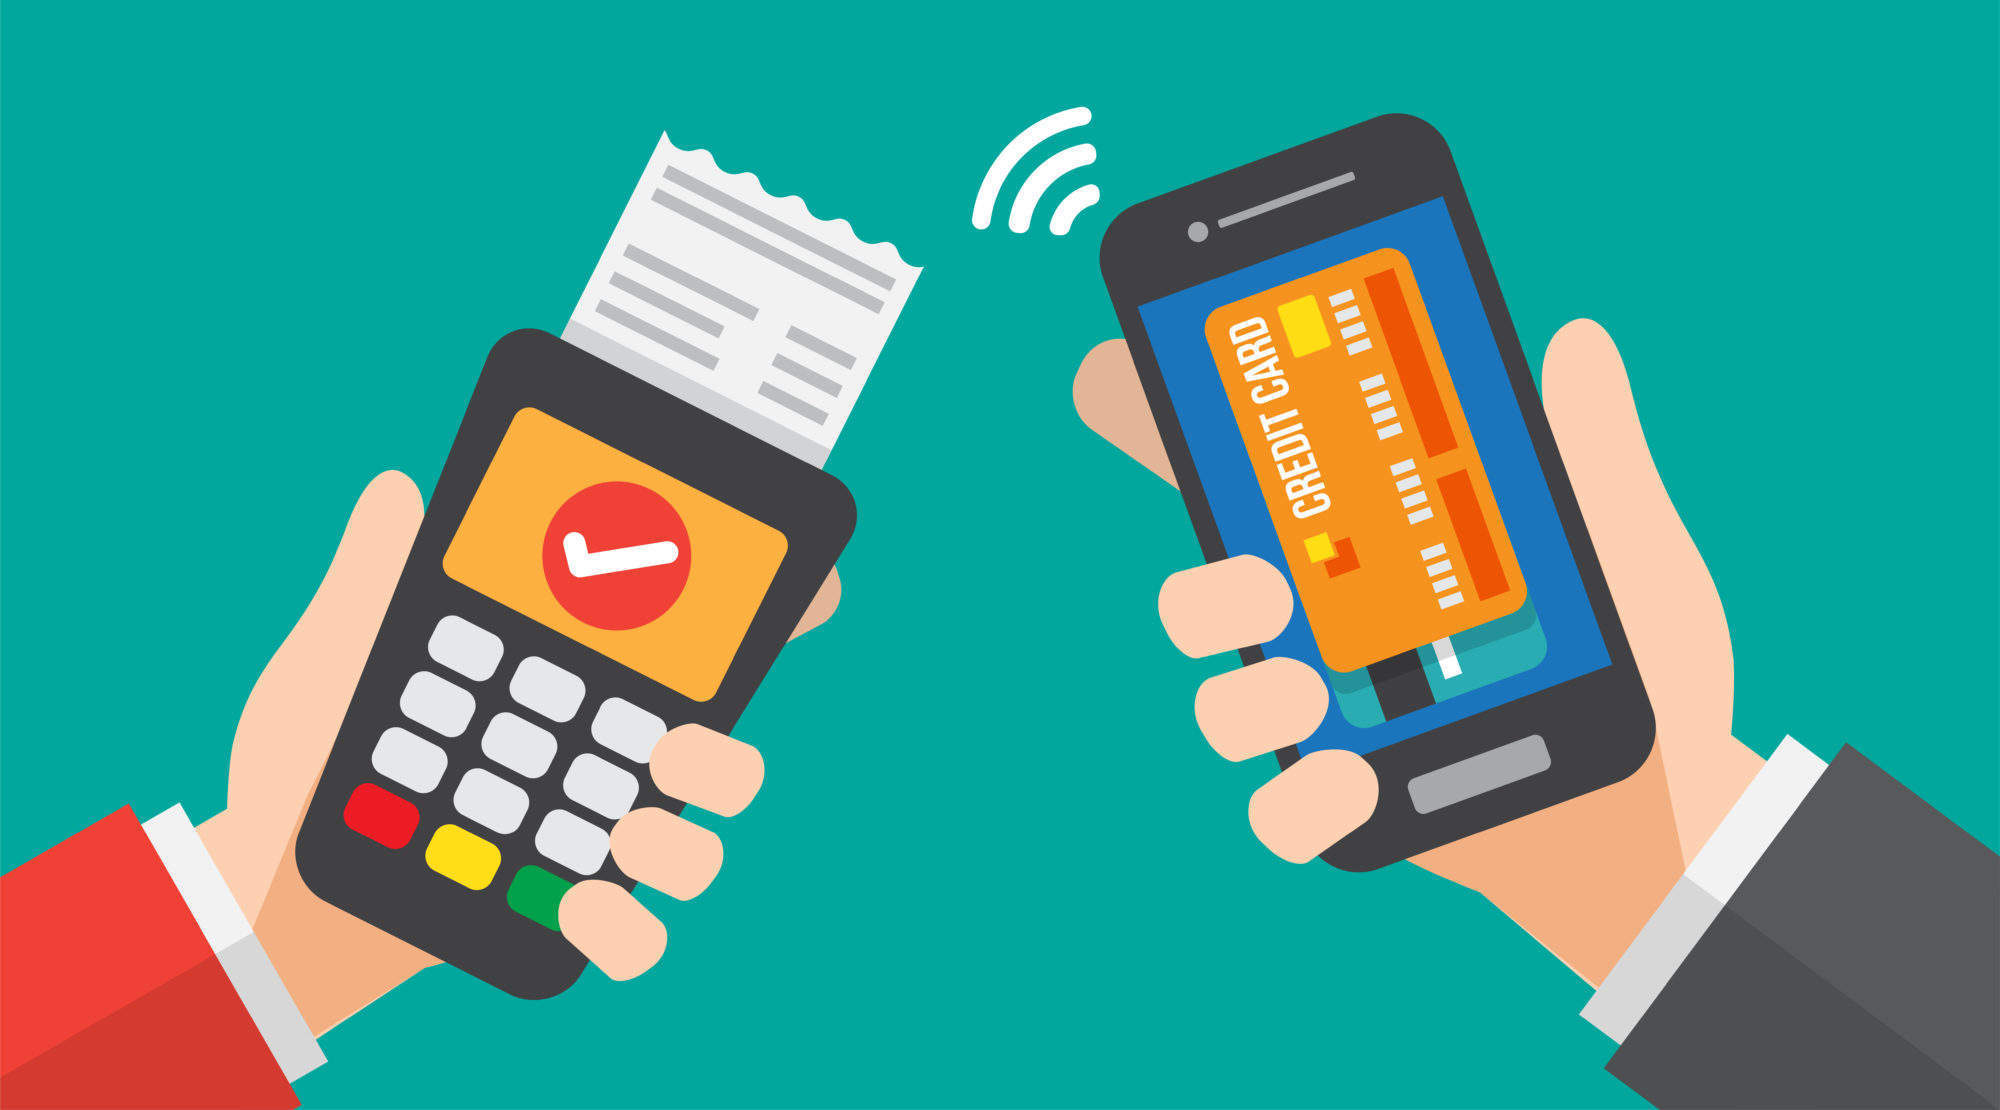 A cashless society threatens poorest most, finds study